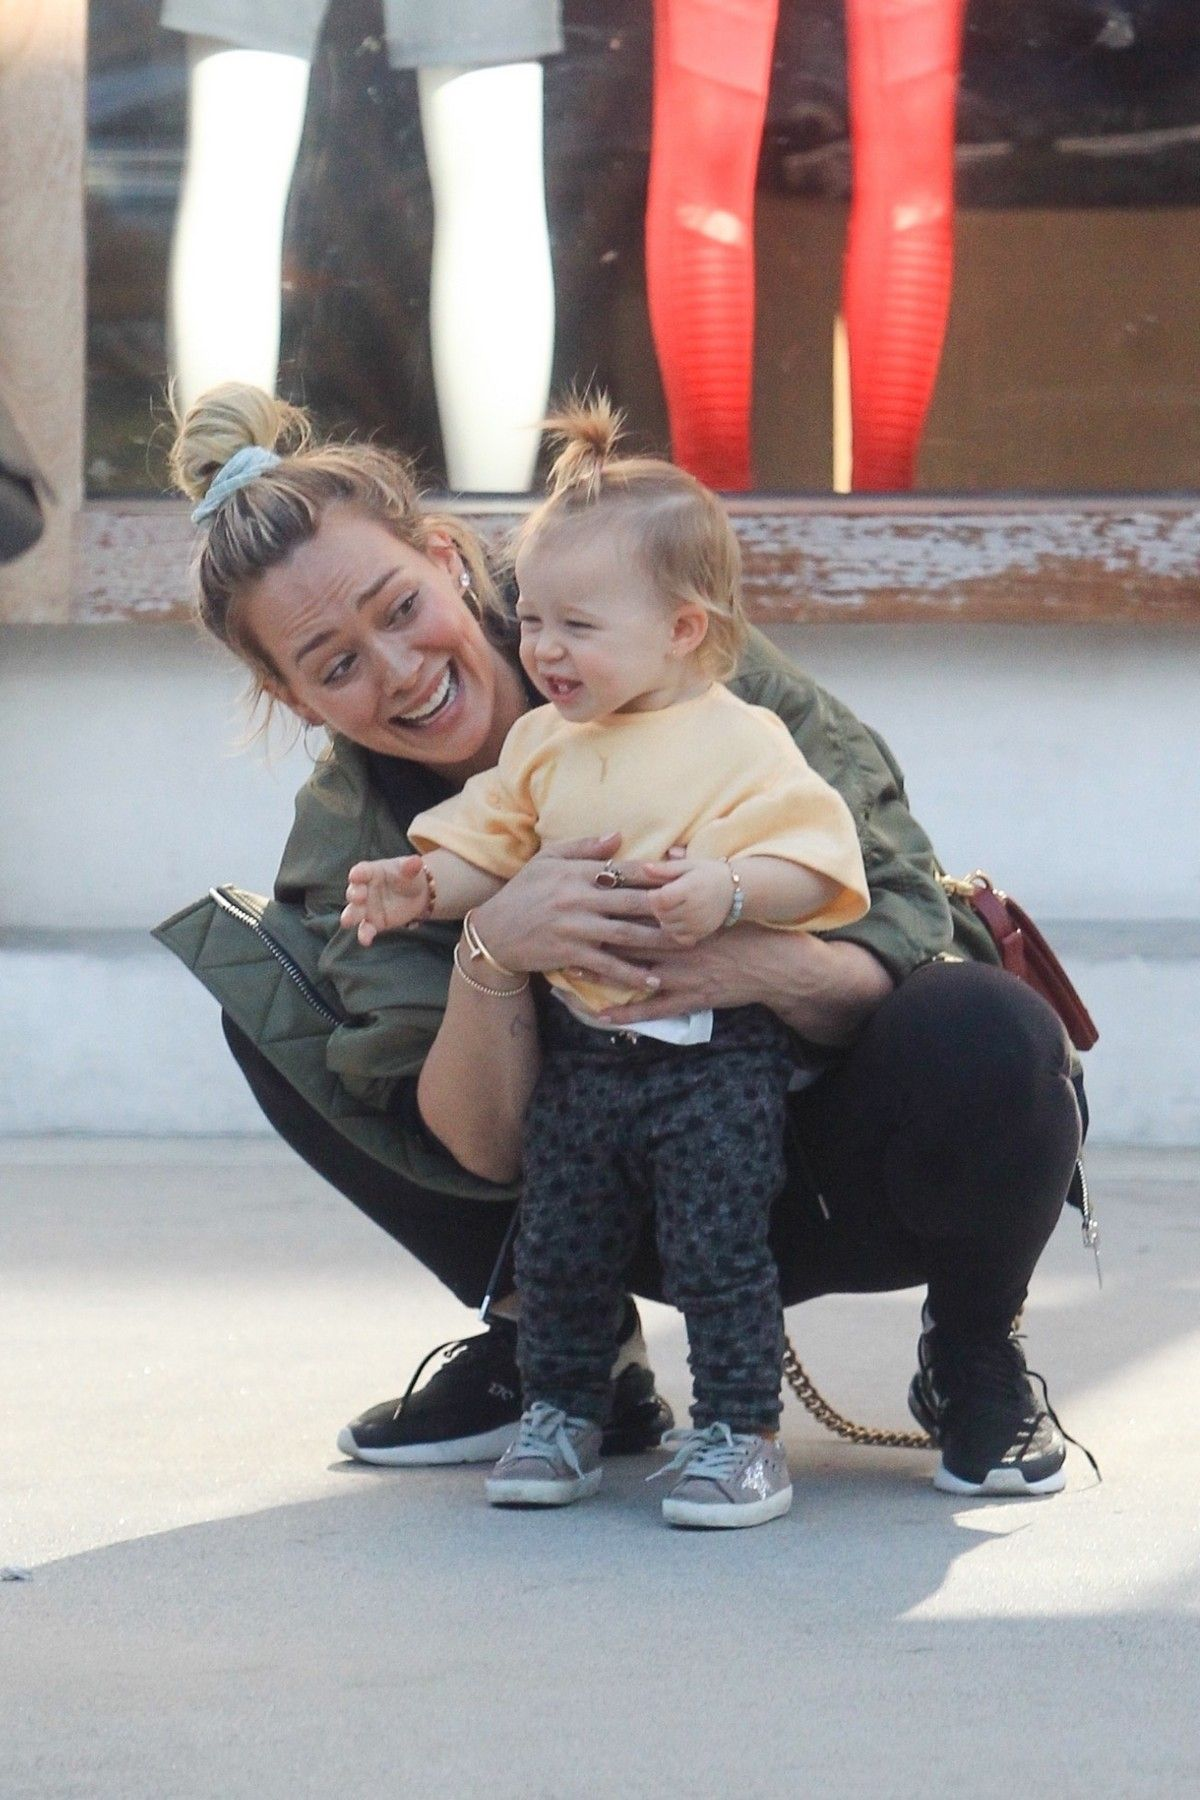 Hilary Duff Having Fun With Her Daughter Banks Violet Bair Out In Beverly Hills 2019 11 23 Hilary Duff The Duff Hilary Duff Baby